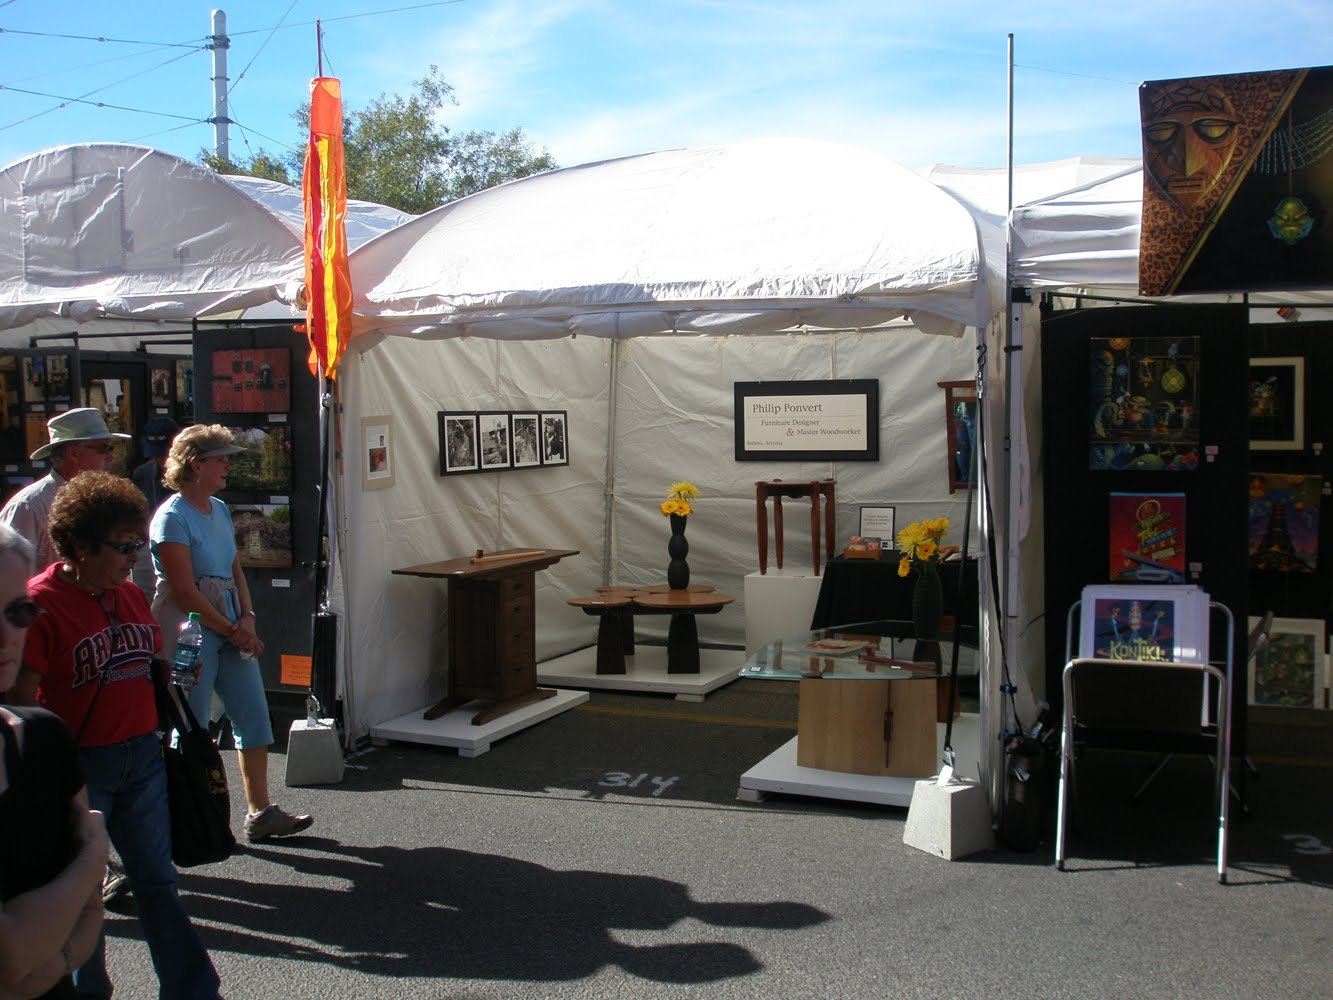 Phil Ponvert Designs: Street fair booth